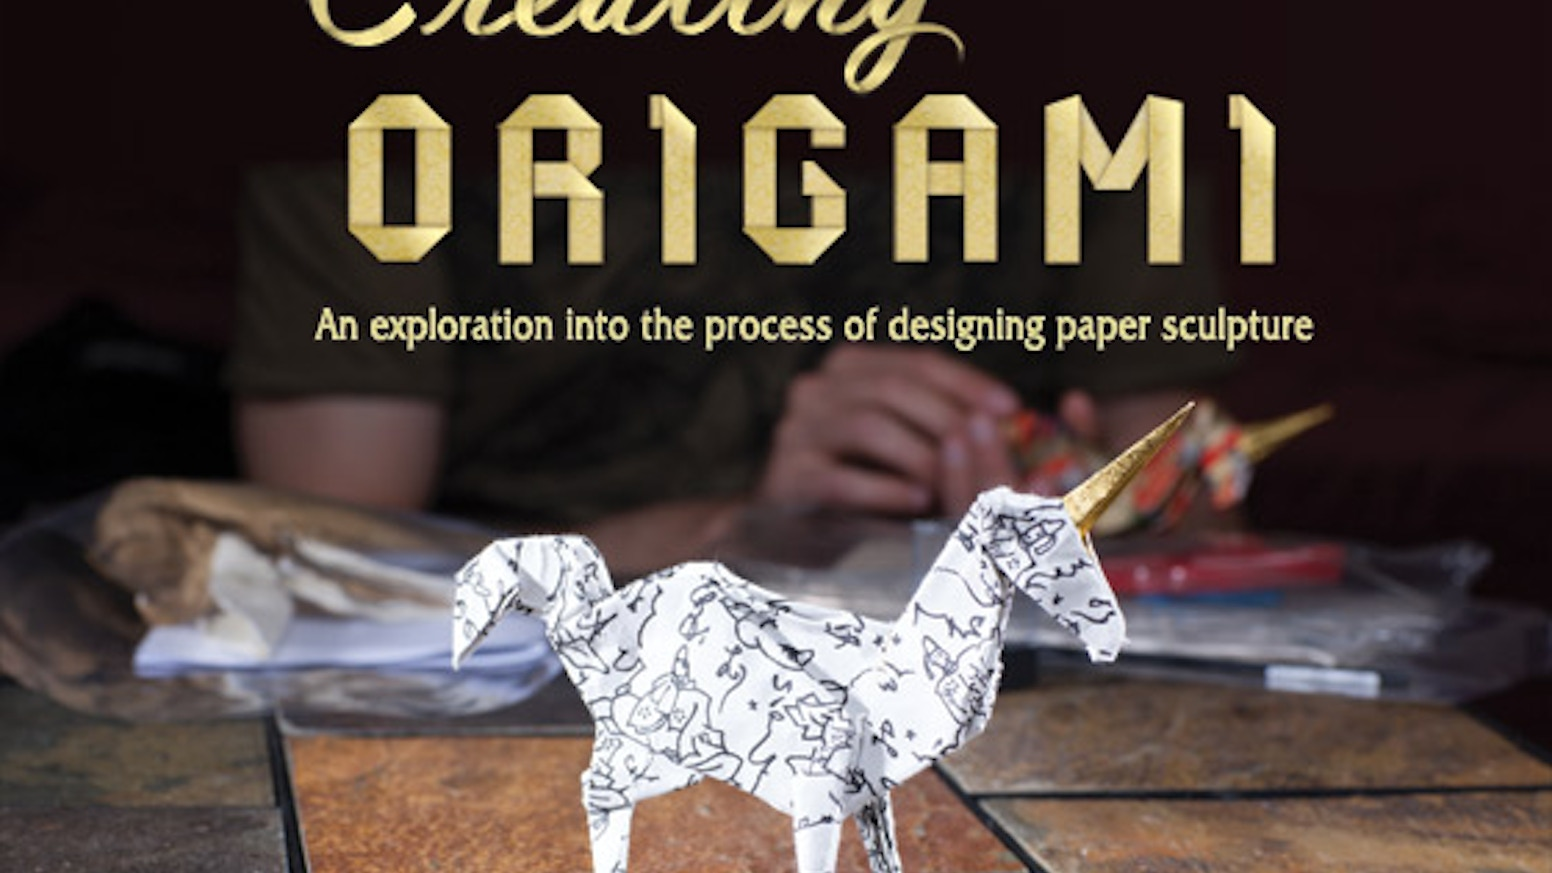 Creating origami a foldable sonata in paper by jc nolan kickstarter ever wondered how they come up with those amazing origami designs jc nolans rare out of print book reveals the secrets jeuxipadfo Image collections